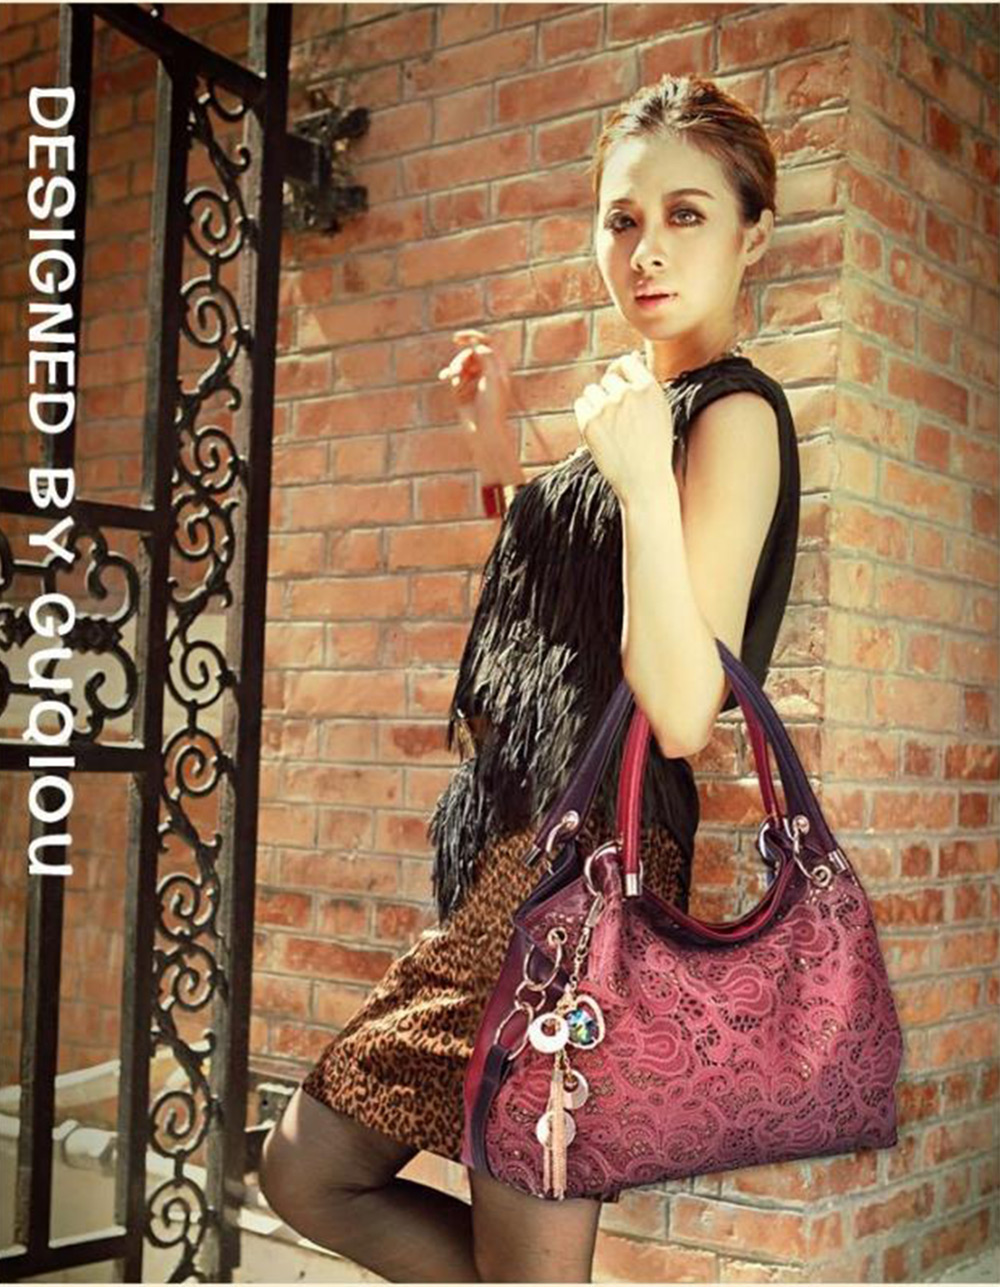 Fashionable Hollow Print Accessories Decoration Women Hand Bag